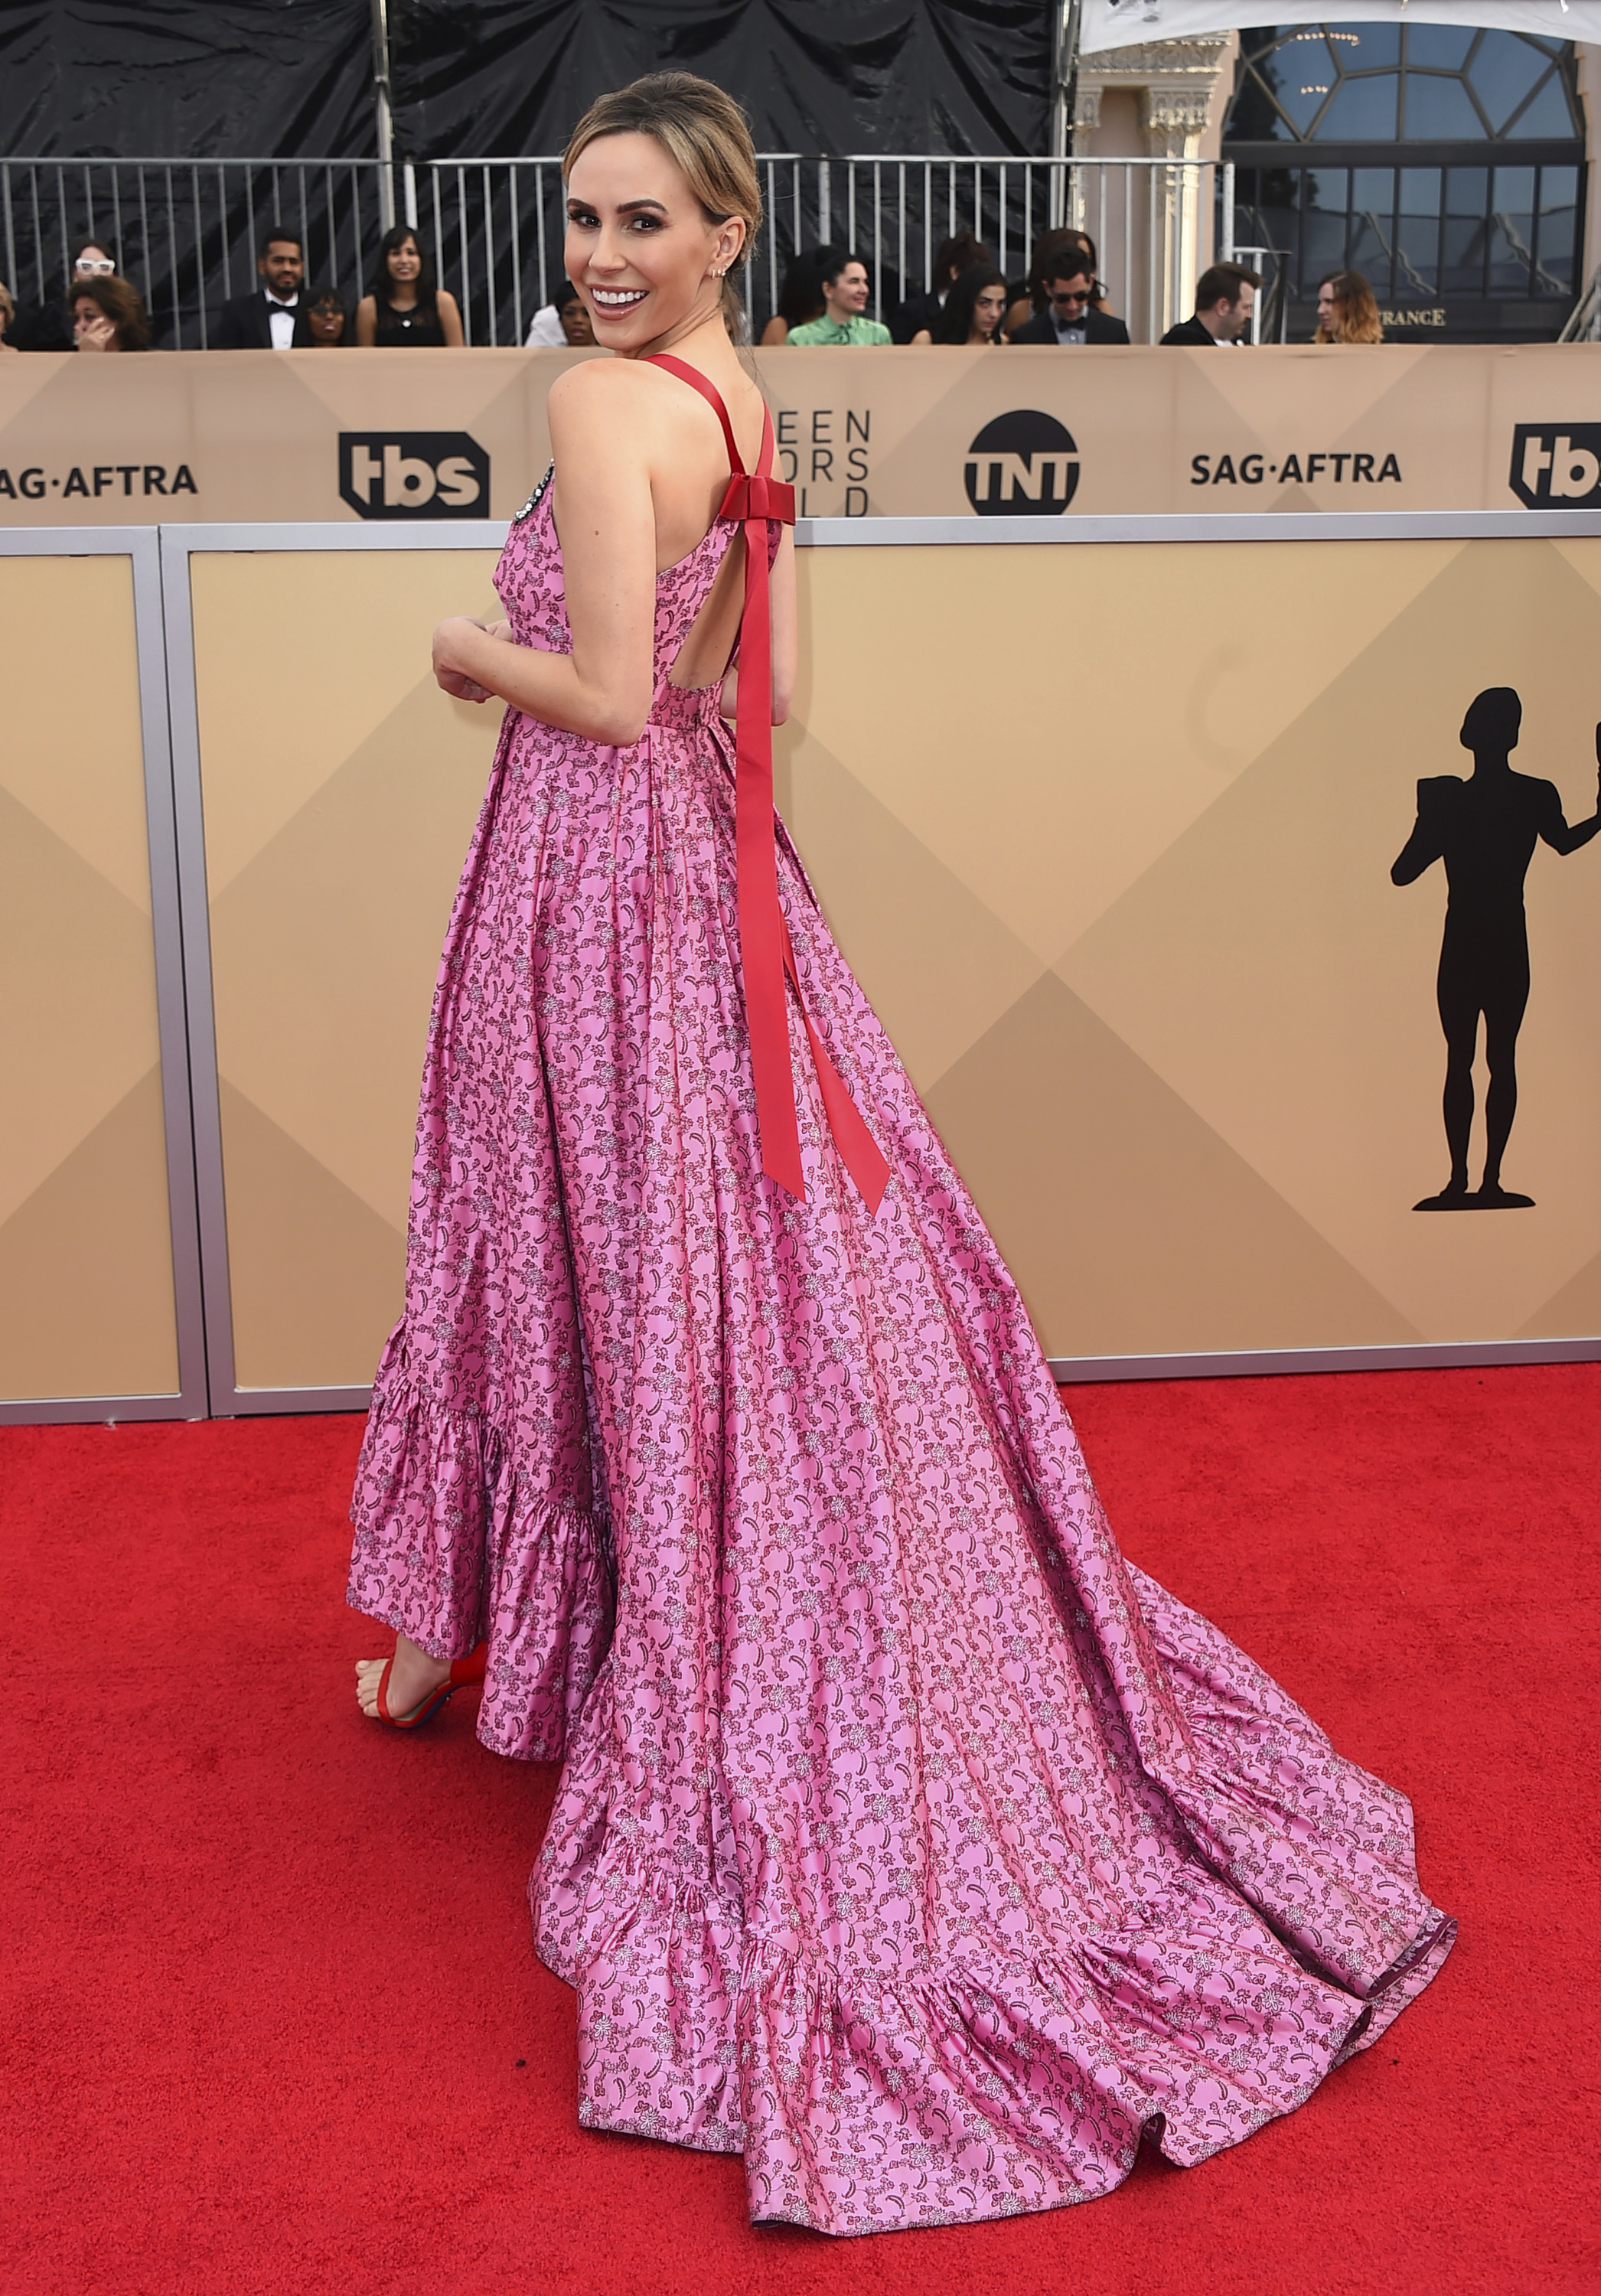 <div class='meta'><div class='origin-logo' data-origin='AP'></div><span class='caption-text' data-credit='Jordan Strauss/Invision/AP'>Keltie Knight arrives at the 24th annual Screen Actors Guild Awards at the Shrine Auditorium & Expo Hall on Sunday, Jan. 21, 2018, in Los Angeles.</span></div>